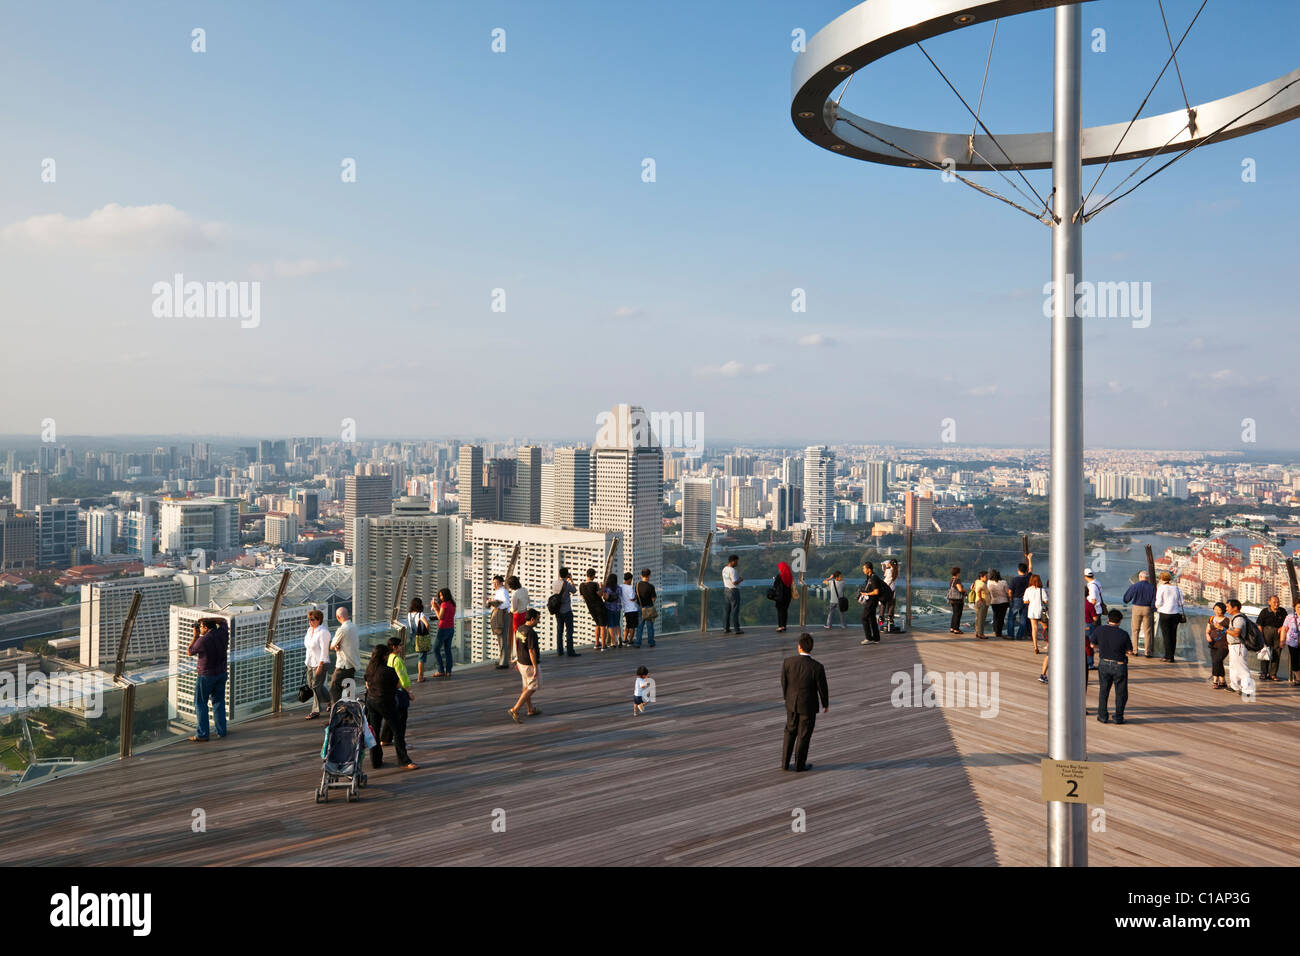 Visitors of Singapore skyline from observation deck of the Marina Bay Sands SkyPark.  Marina Bay, Singapore - Stock Image